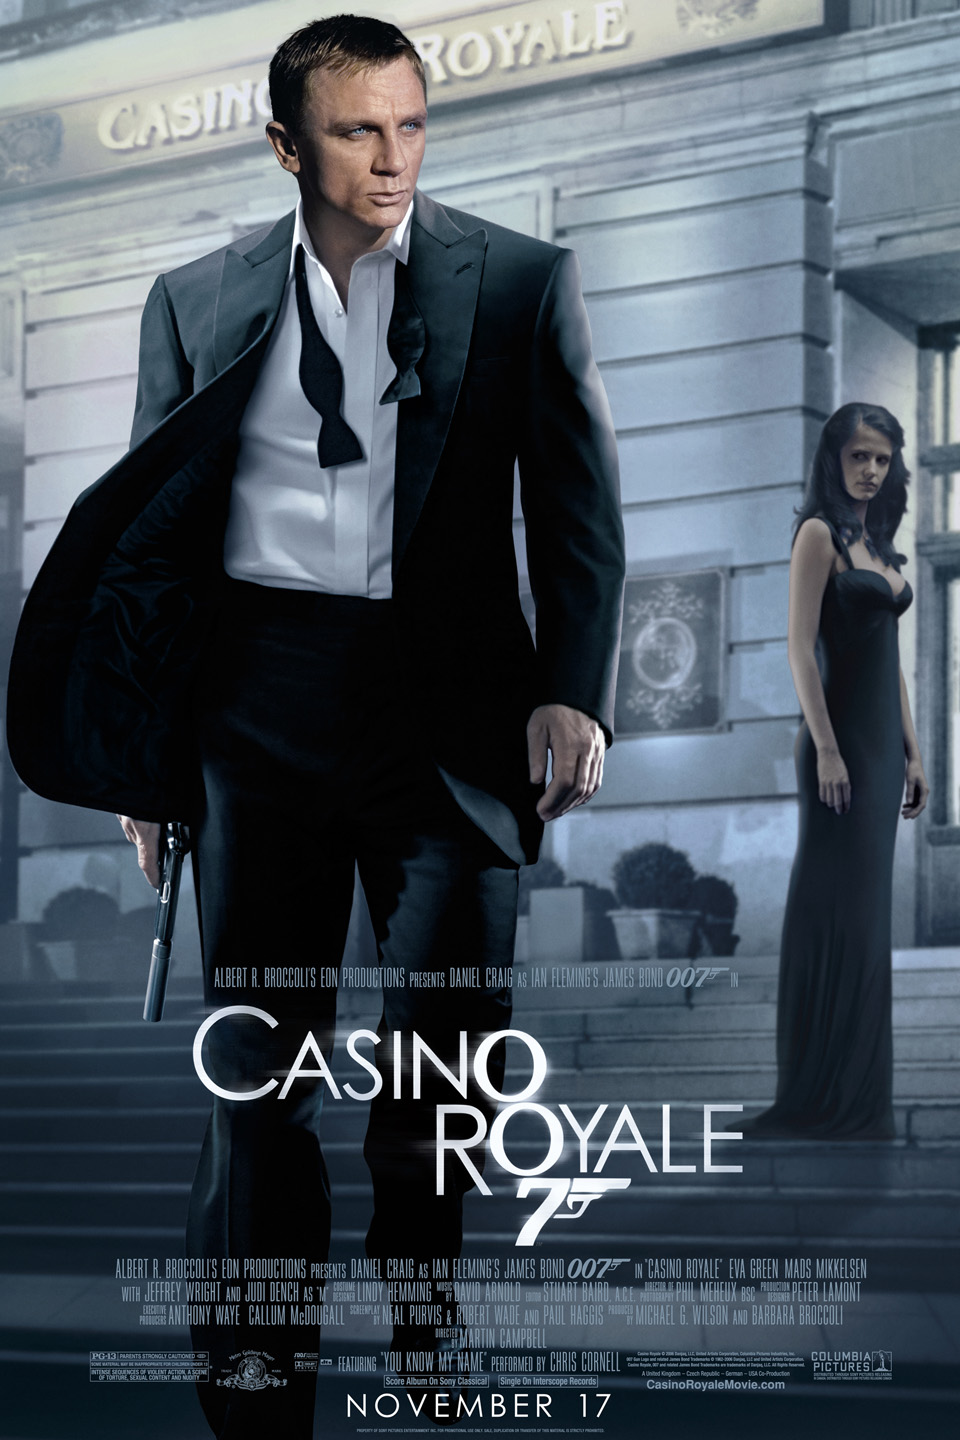 casino royale 2006 full movie online free onlinecasino.de